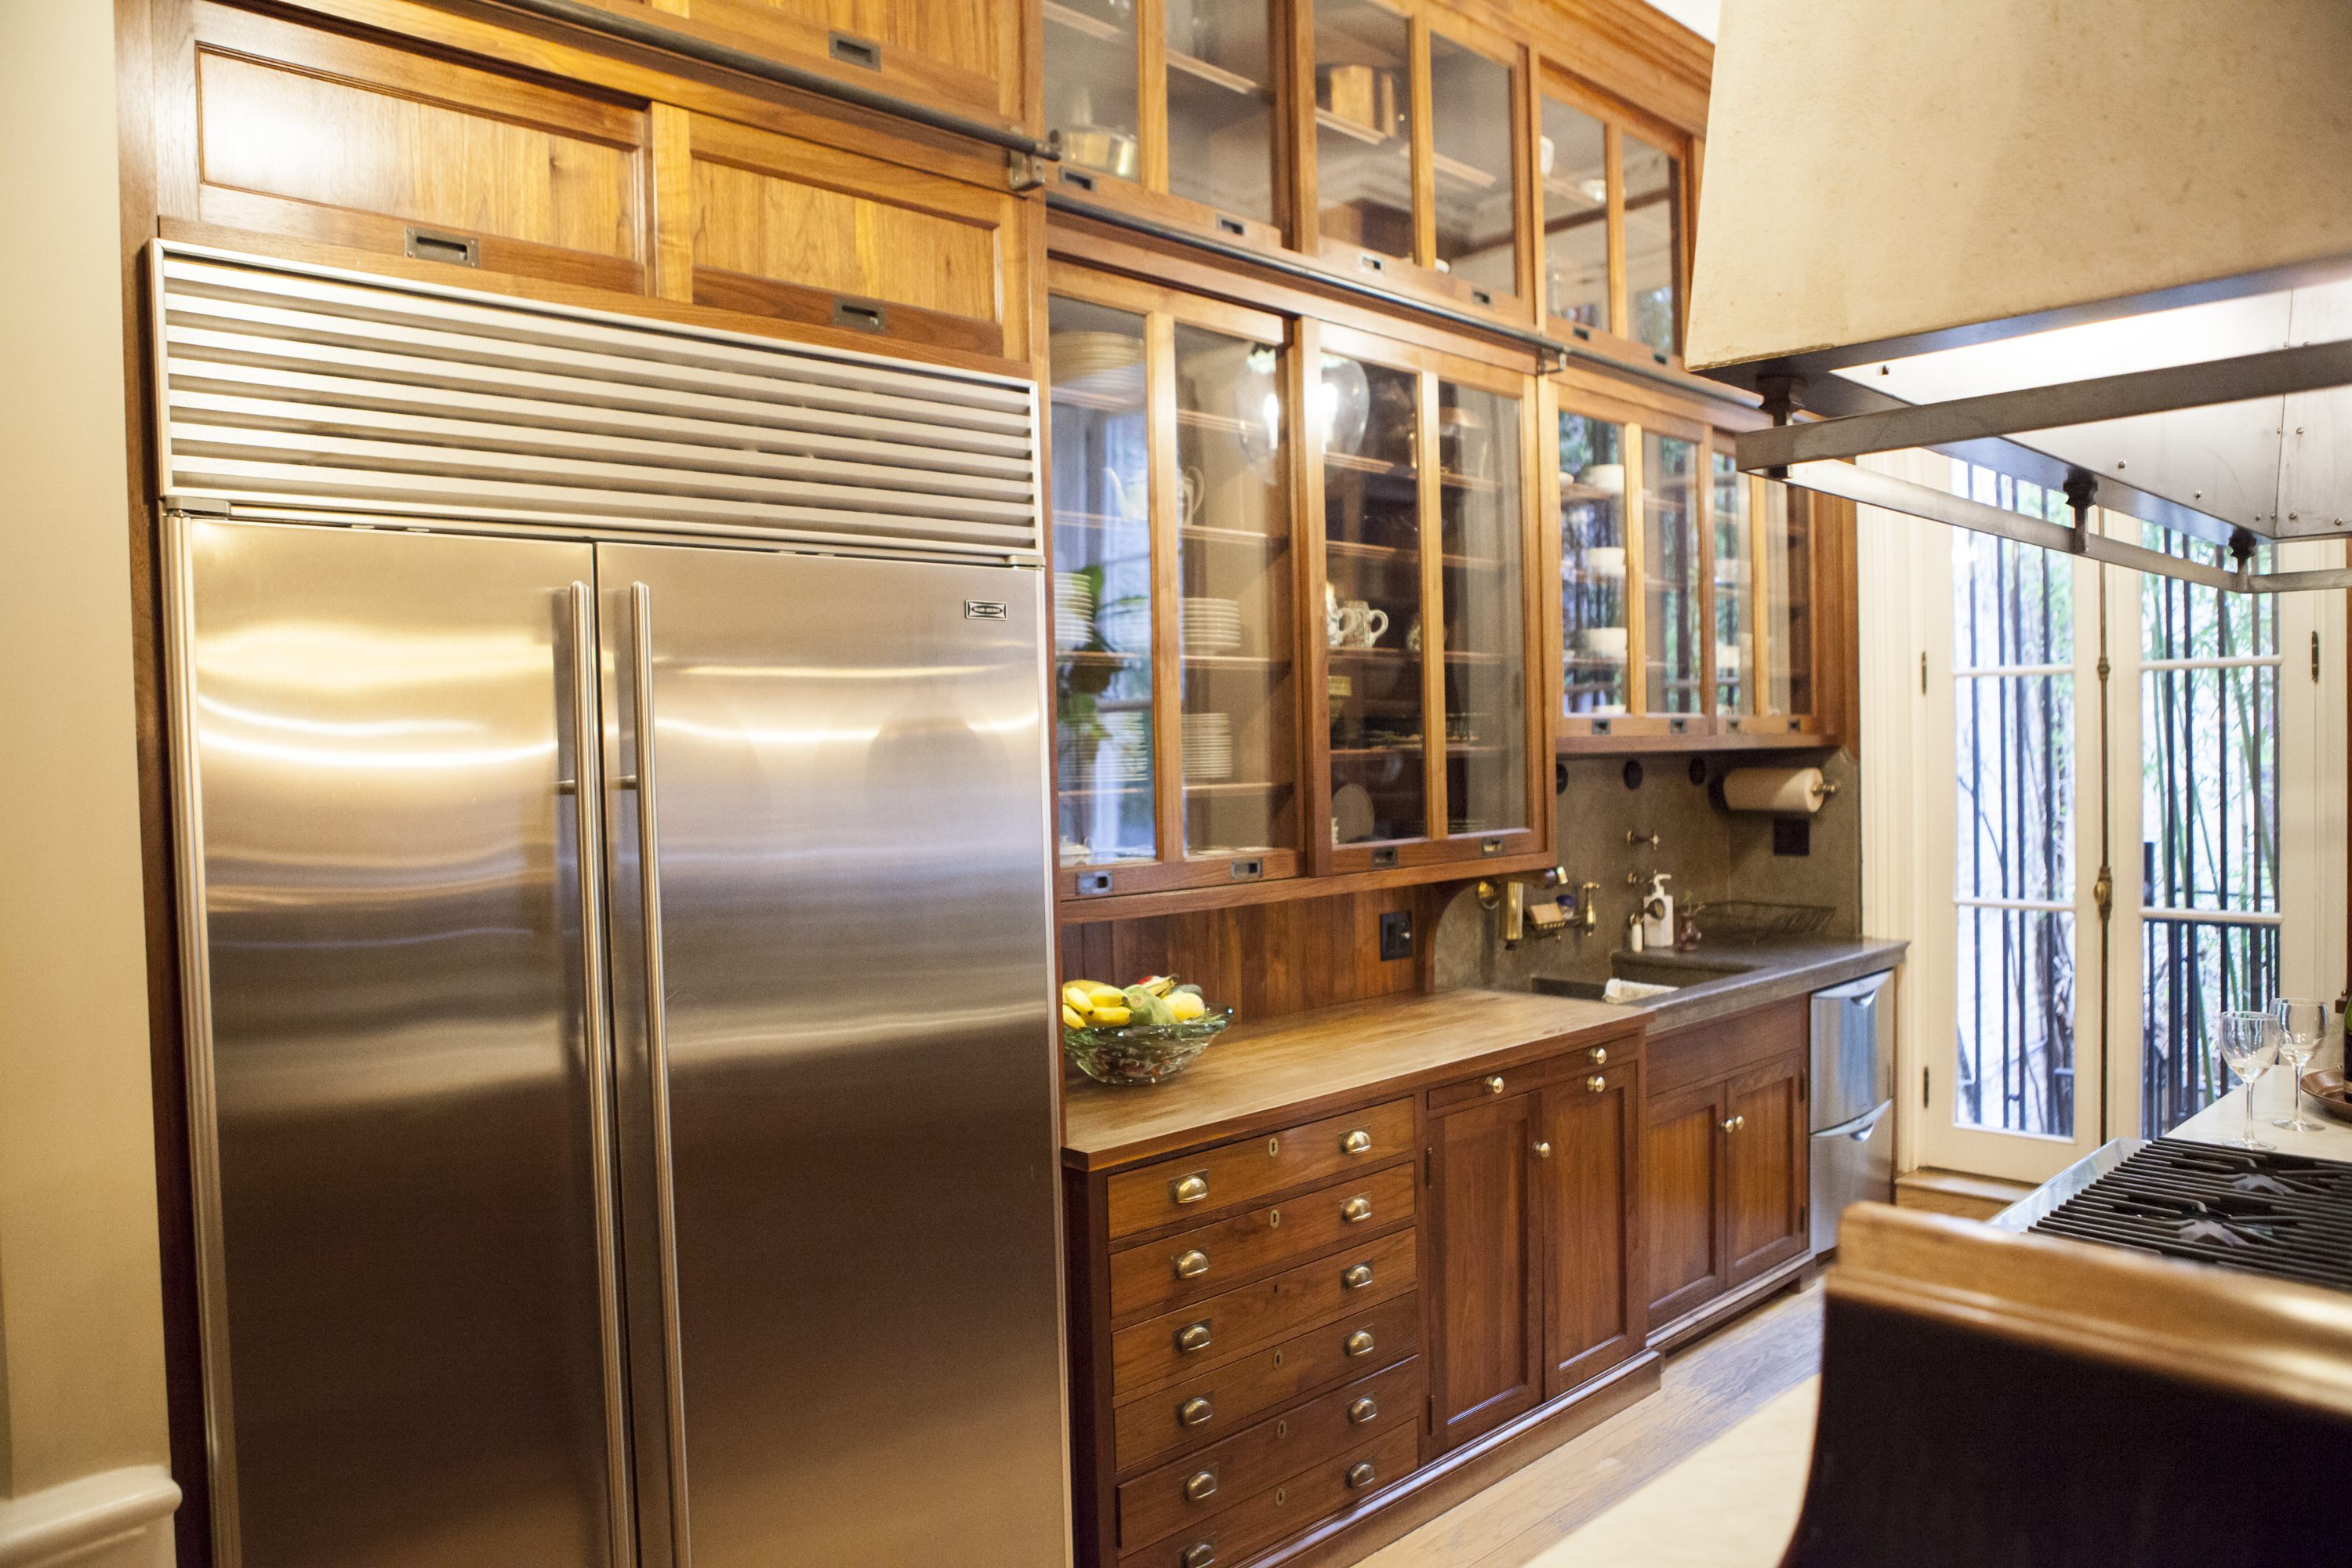 A closer look at the completely custom kitchen